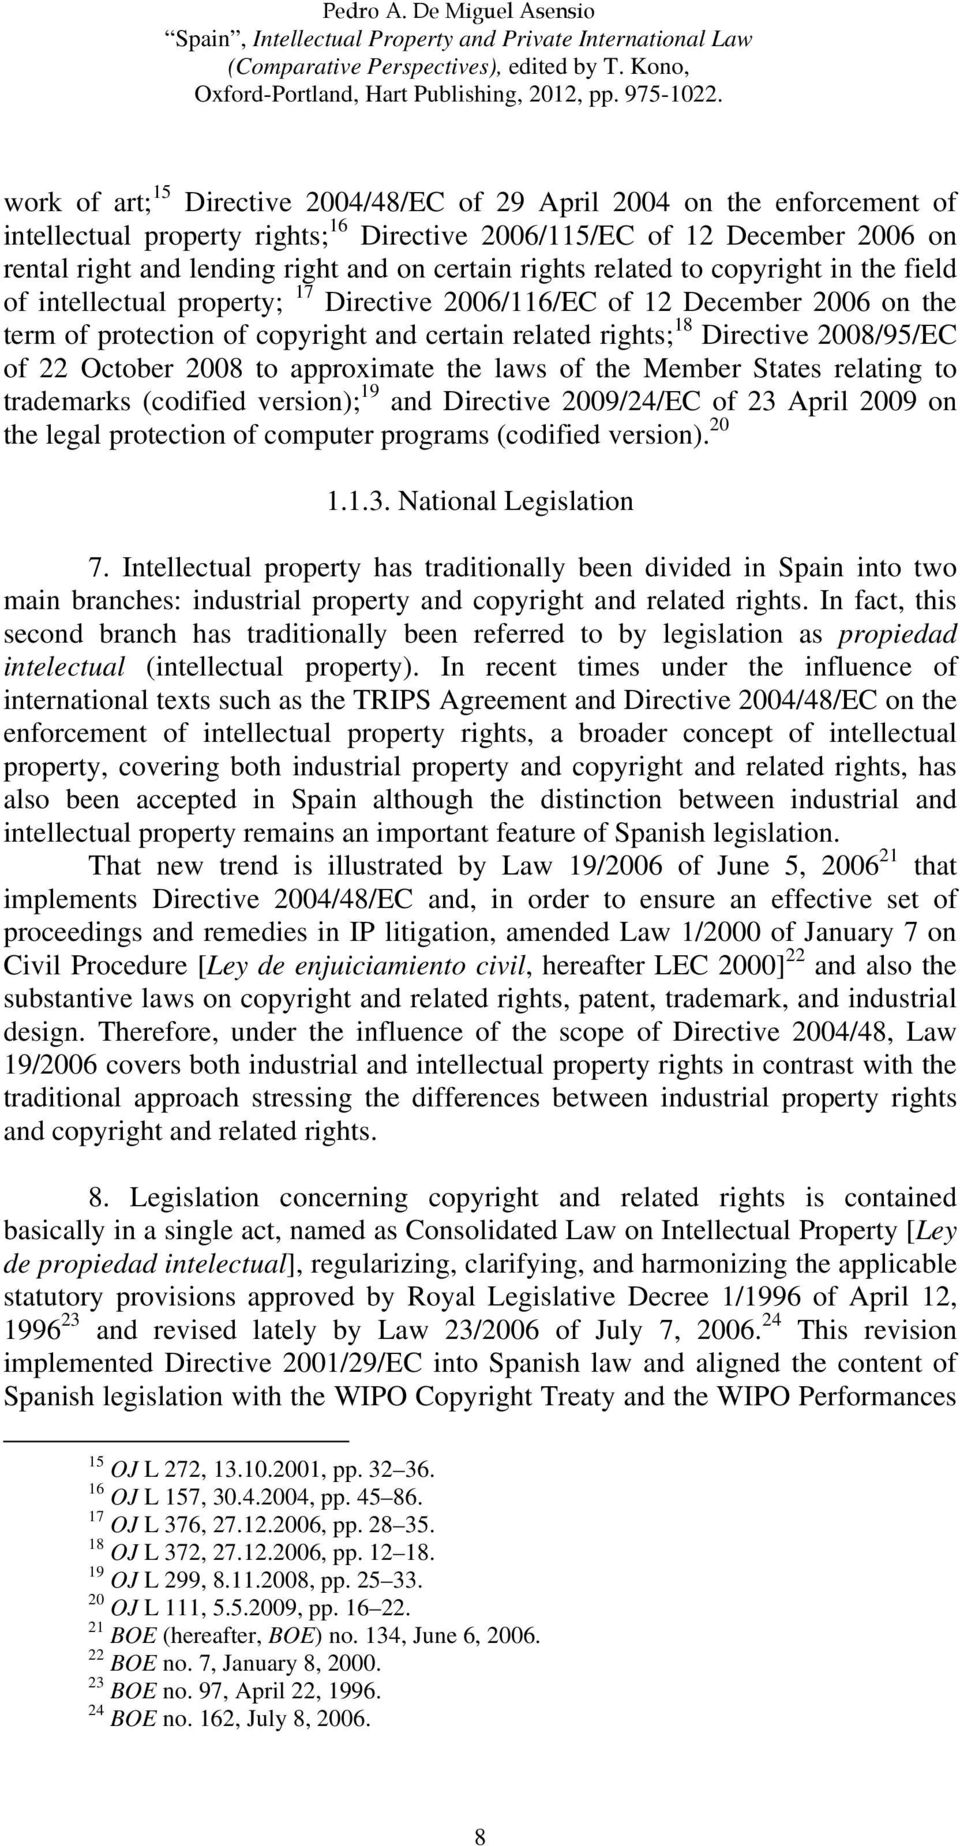 2008/95/EC of 22 October 2008 to approximate the laws of the Member States relating to trademarks (codified version); 19 and Directive 2009/24/EC of 23 April 2009 on the legal protection of computer